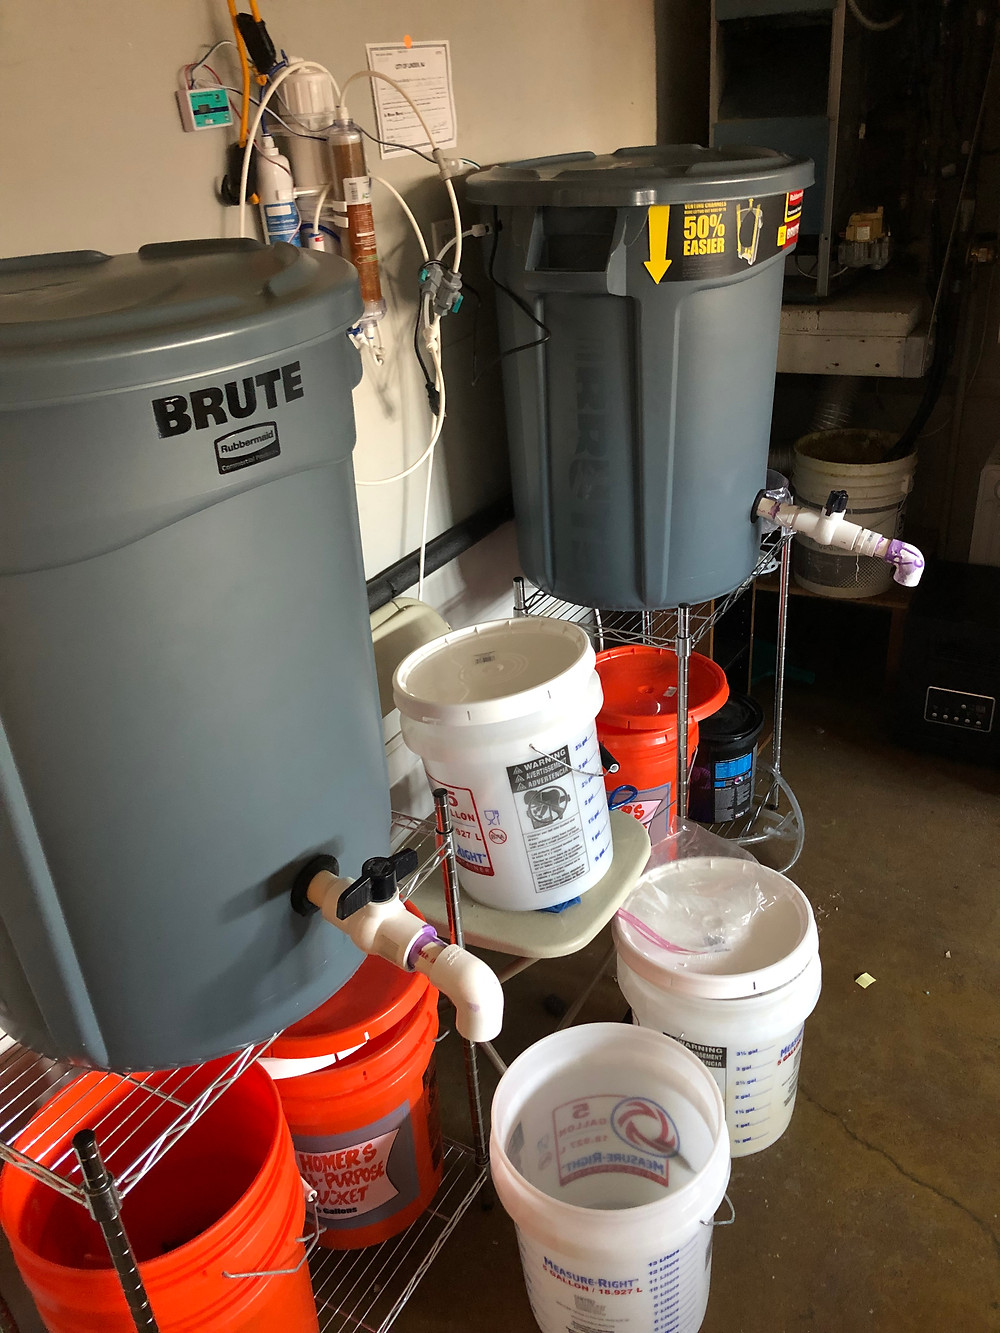 Salt water mixing station using two Brute trash cans, RO/DI unit and float valves